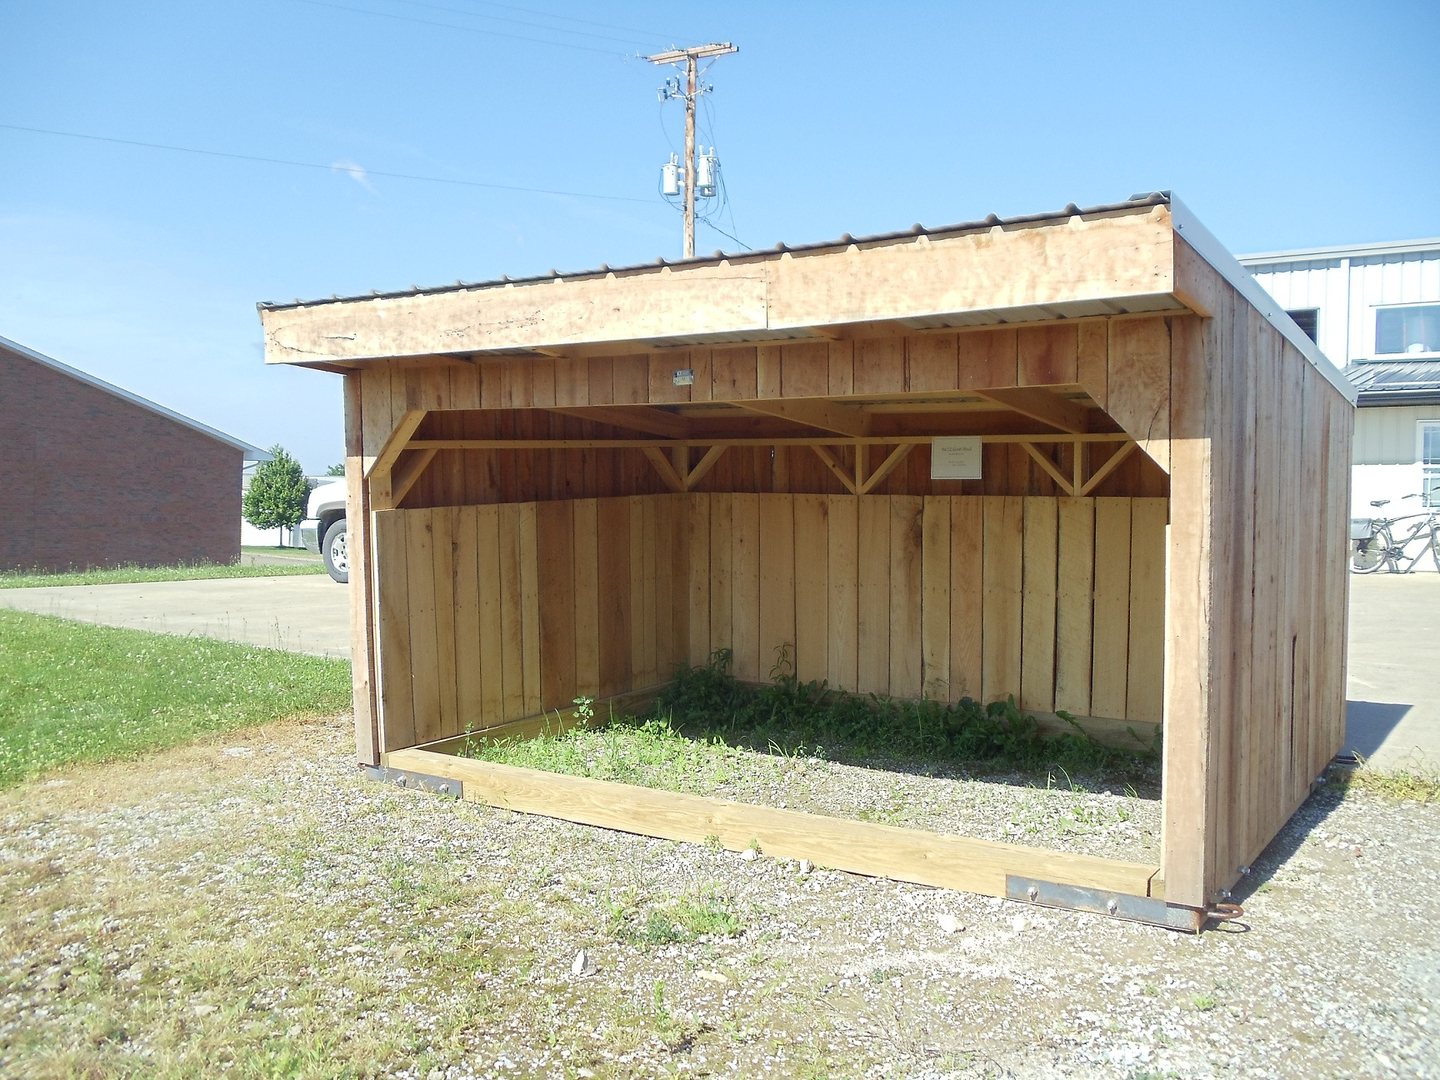 Our Goat Sheds Are Fully Portable Durable Little Shelters And Quite Versatile To Accommodate A Variety Of Different Animals Including Ponies Goats Sheep